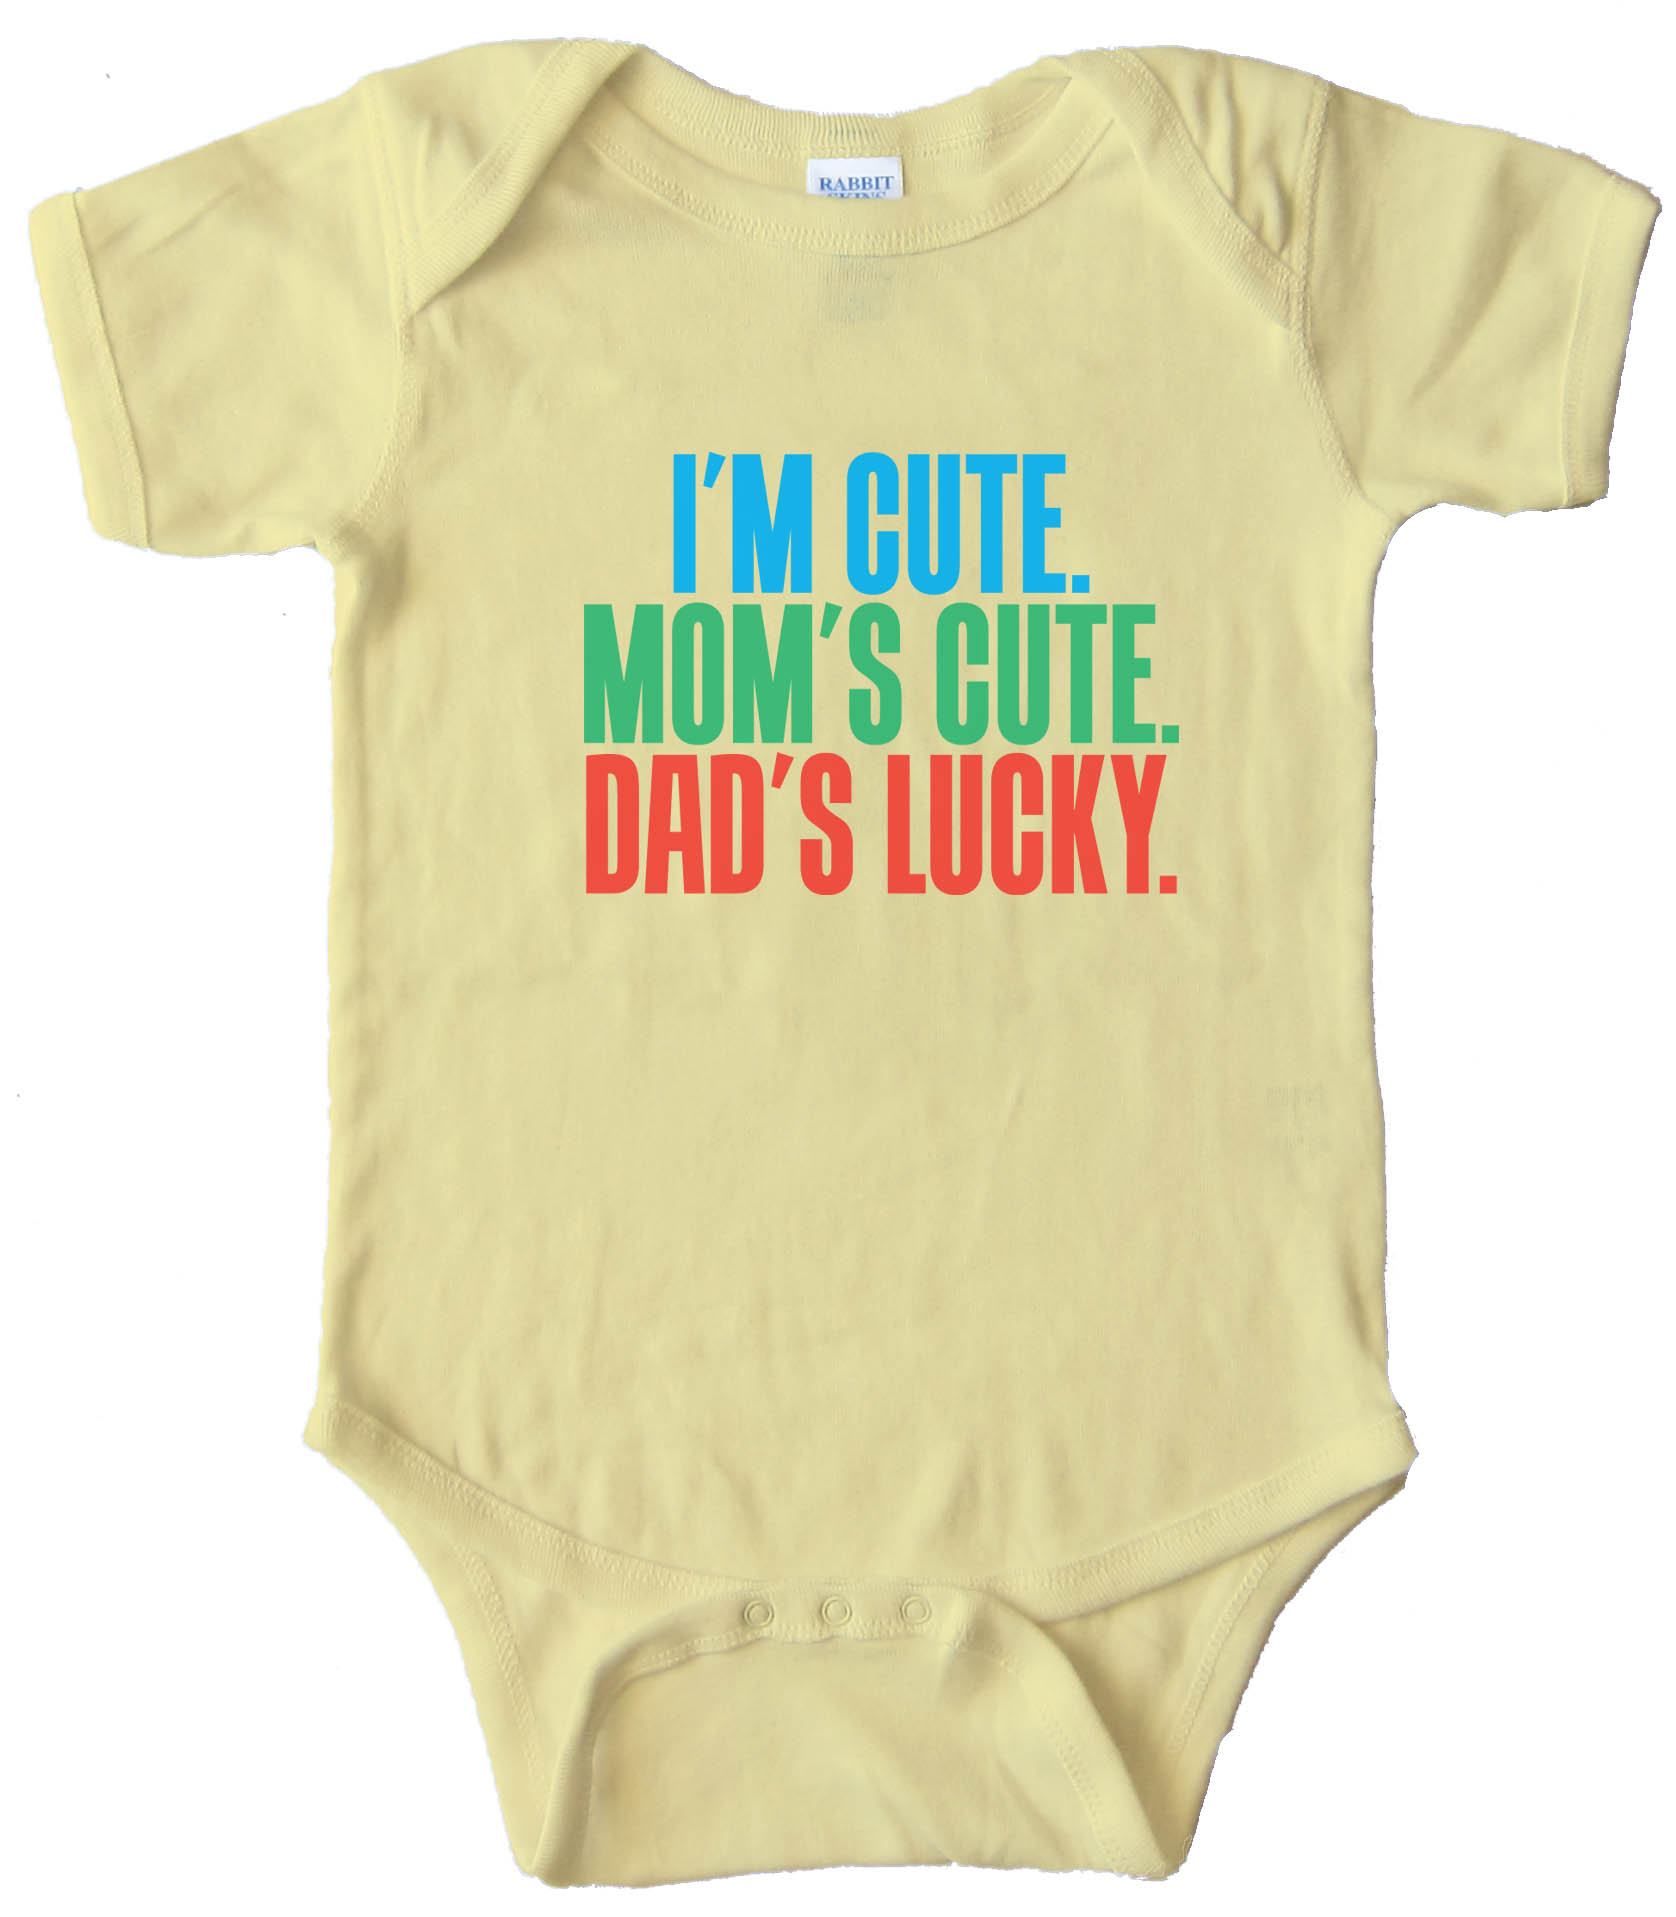 I'M Cute - Mom'S Cute - Dad'S Lucky - Baby Bodysuit